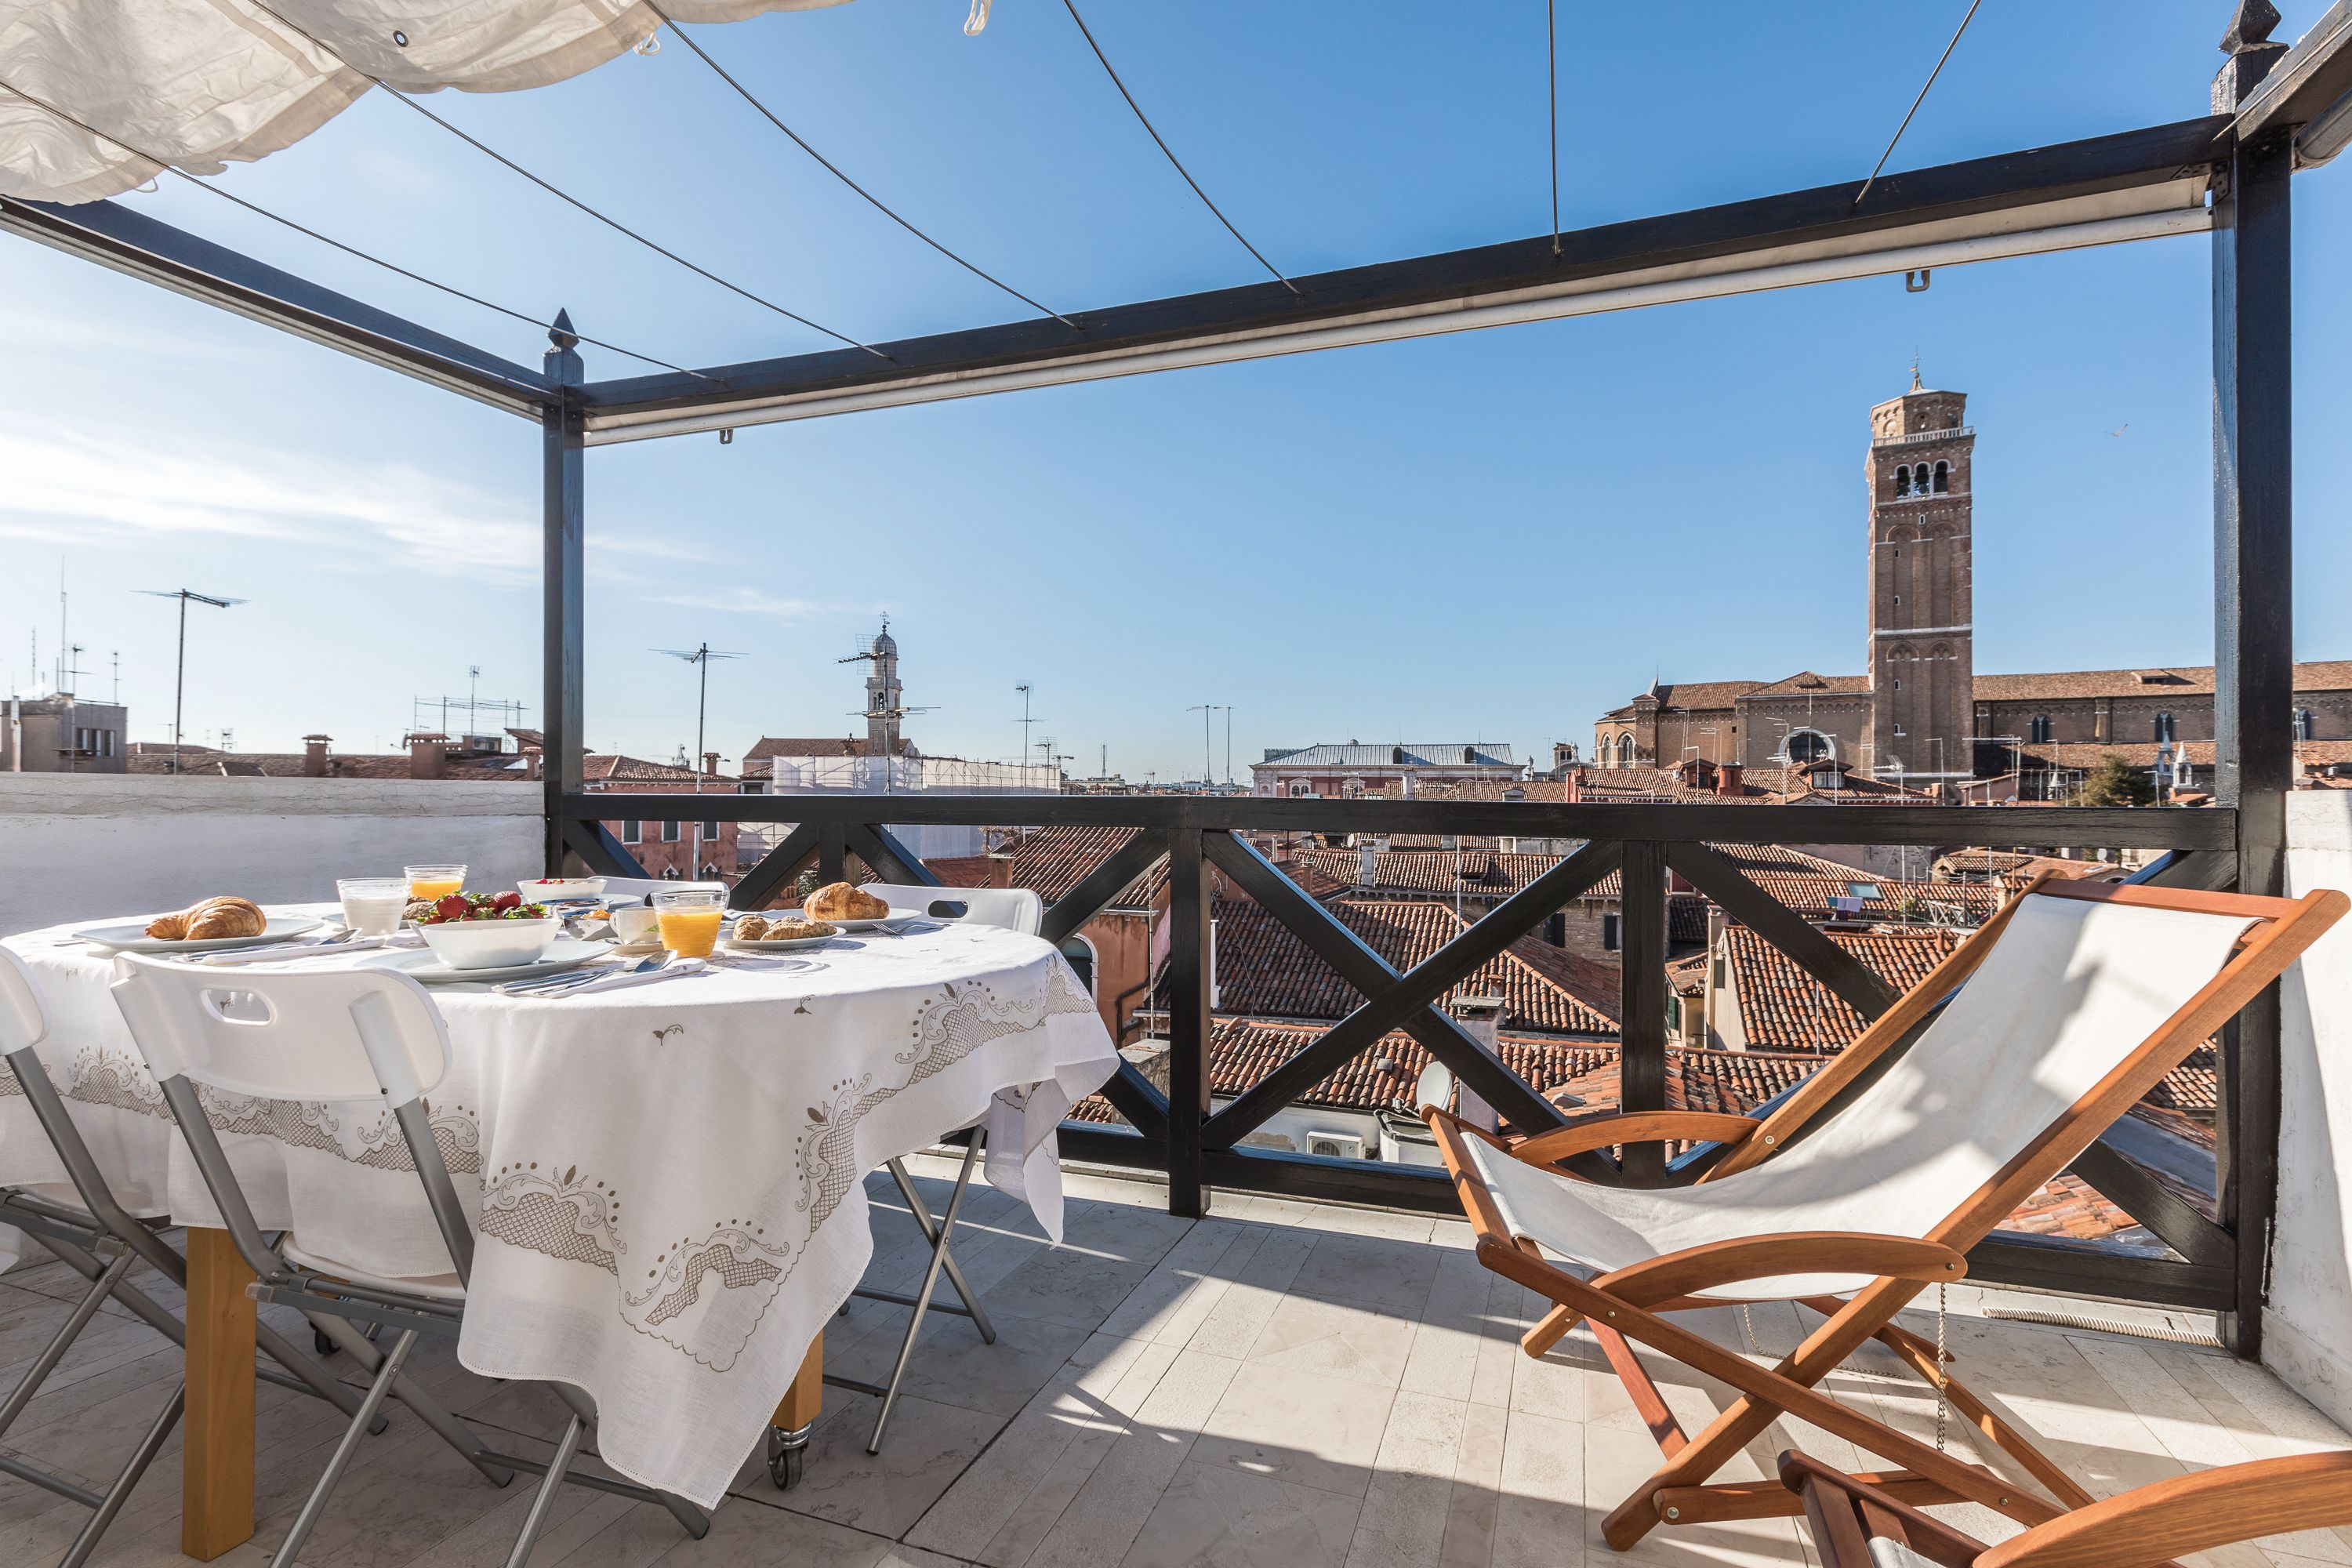 the terrace is spacious enough to be used as a sundeck or as a open-air dining room